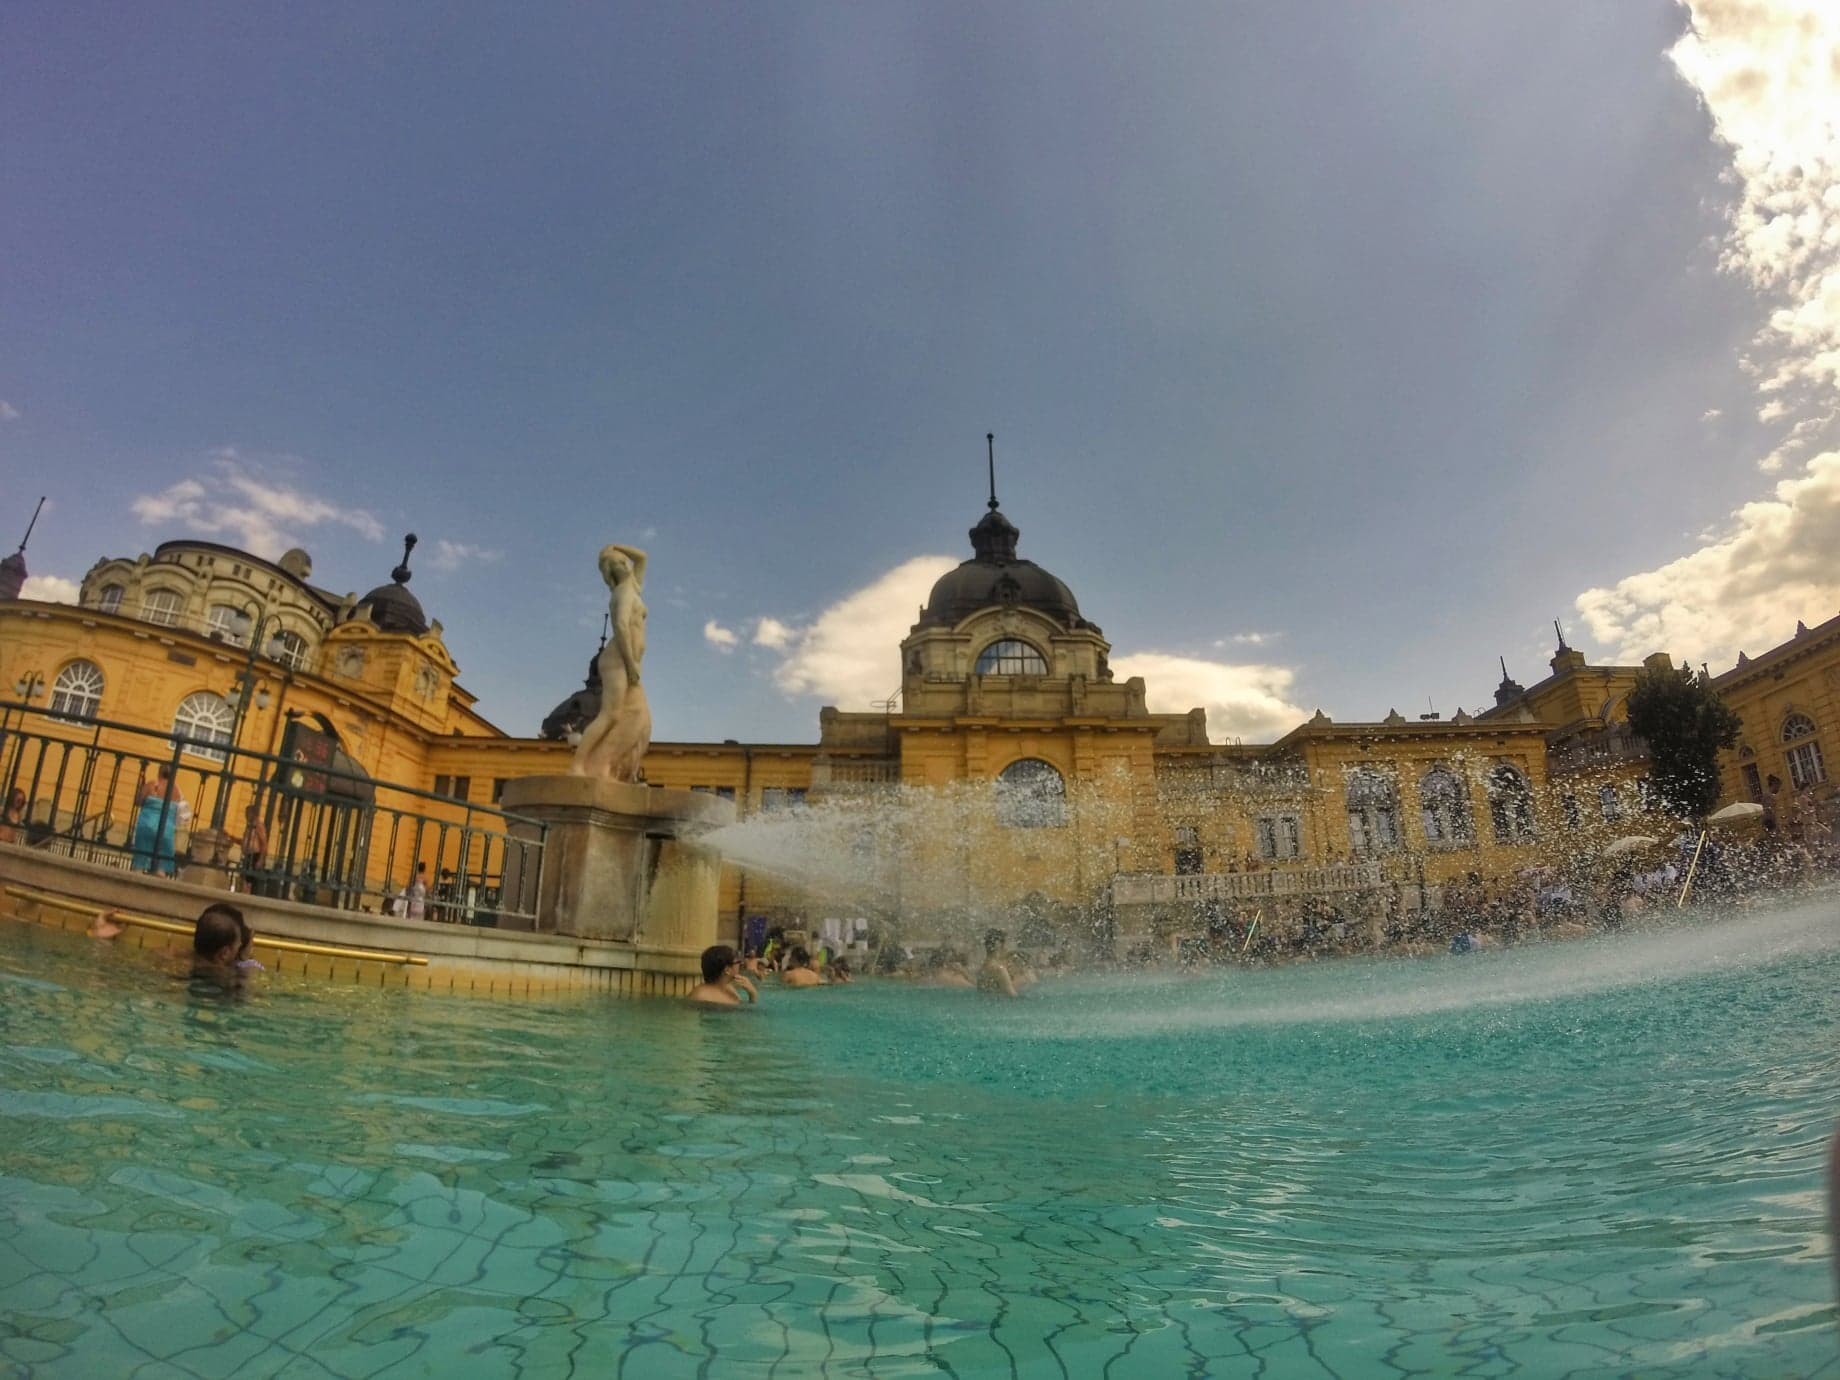 A view of the iconic yellow buildings at the Szechenyi Baths, Budapest.